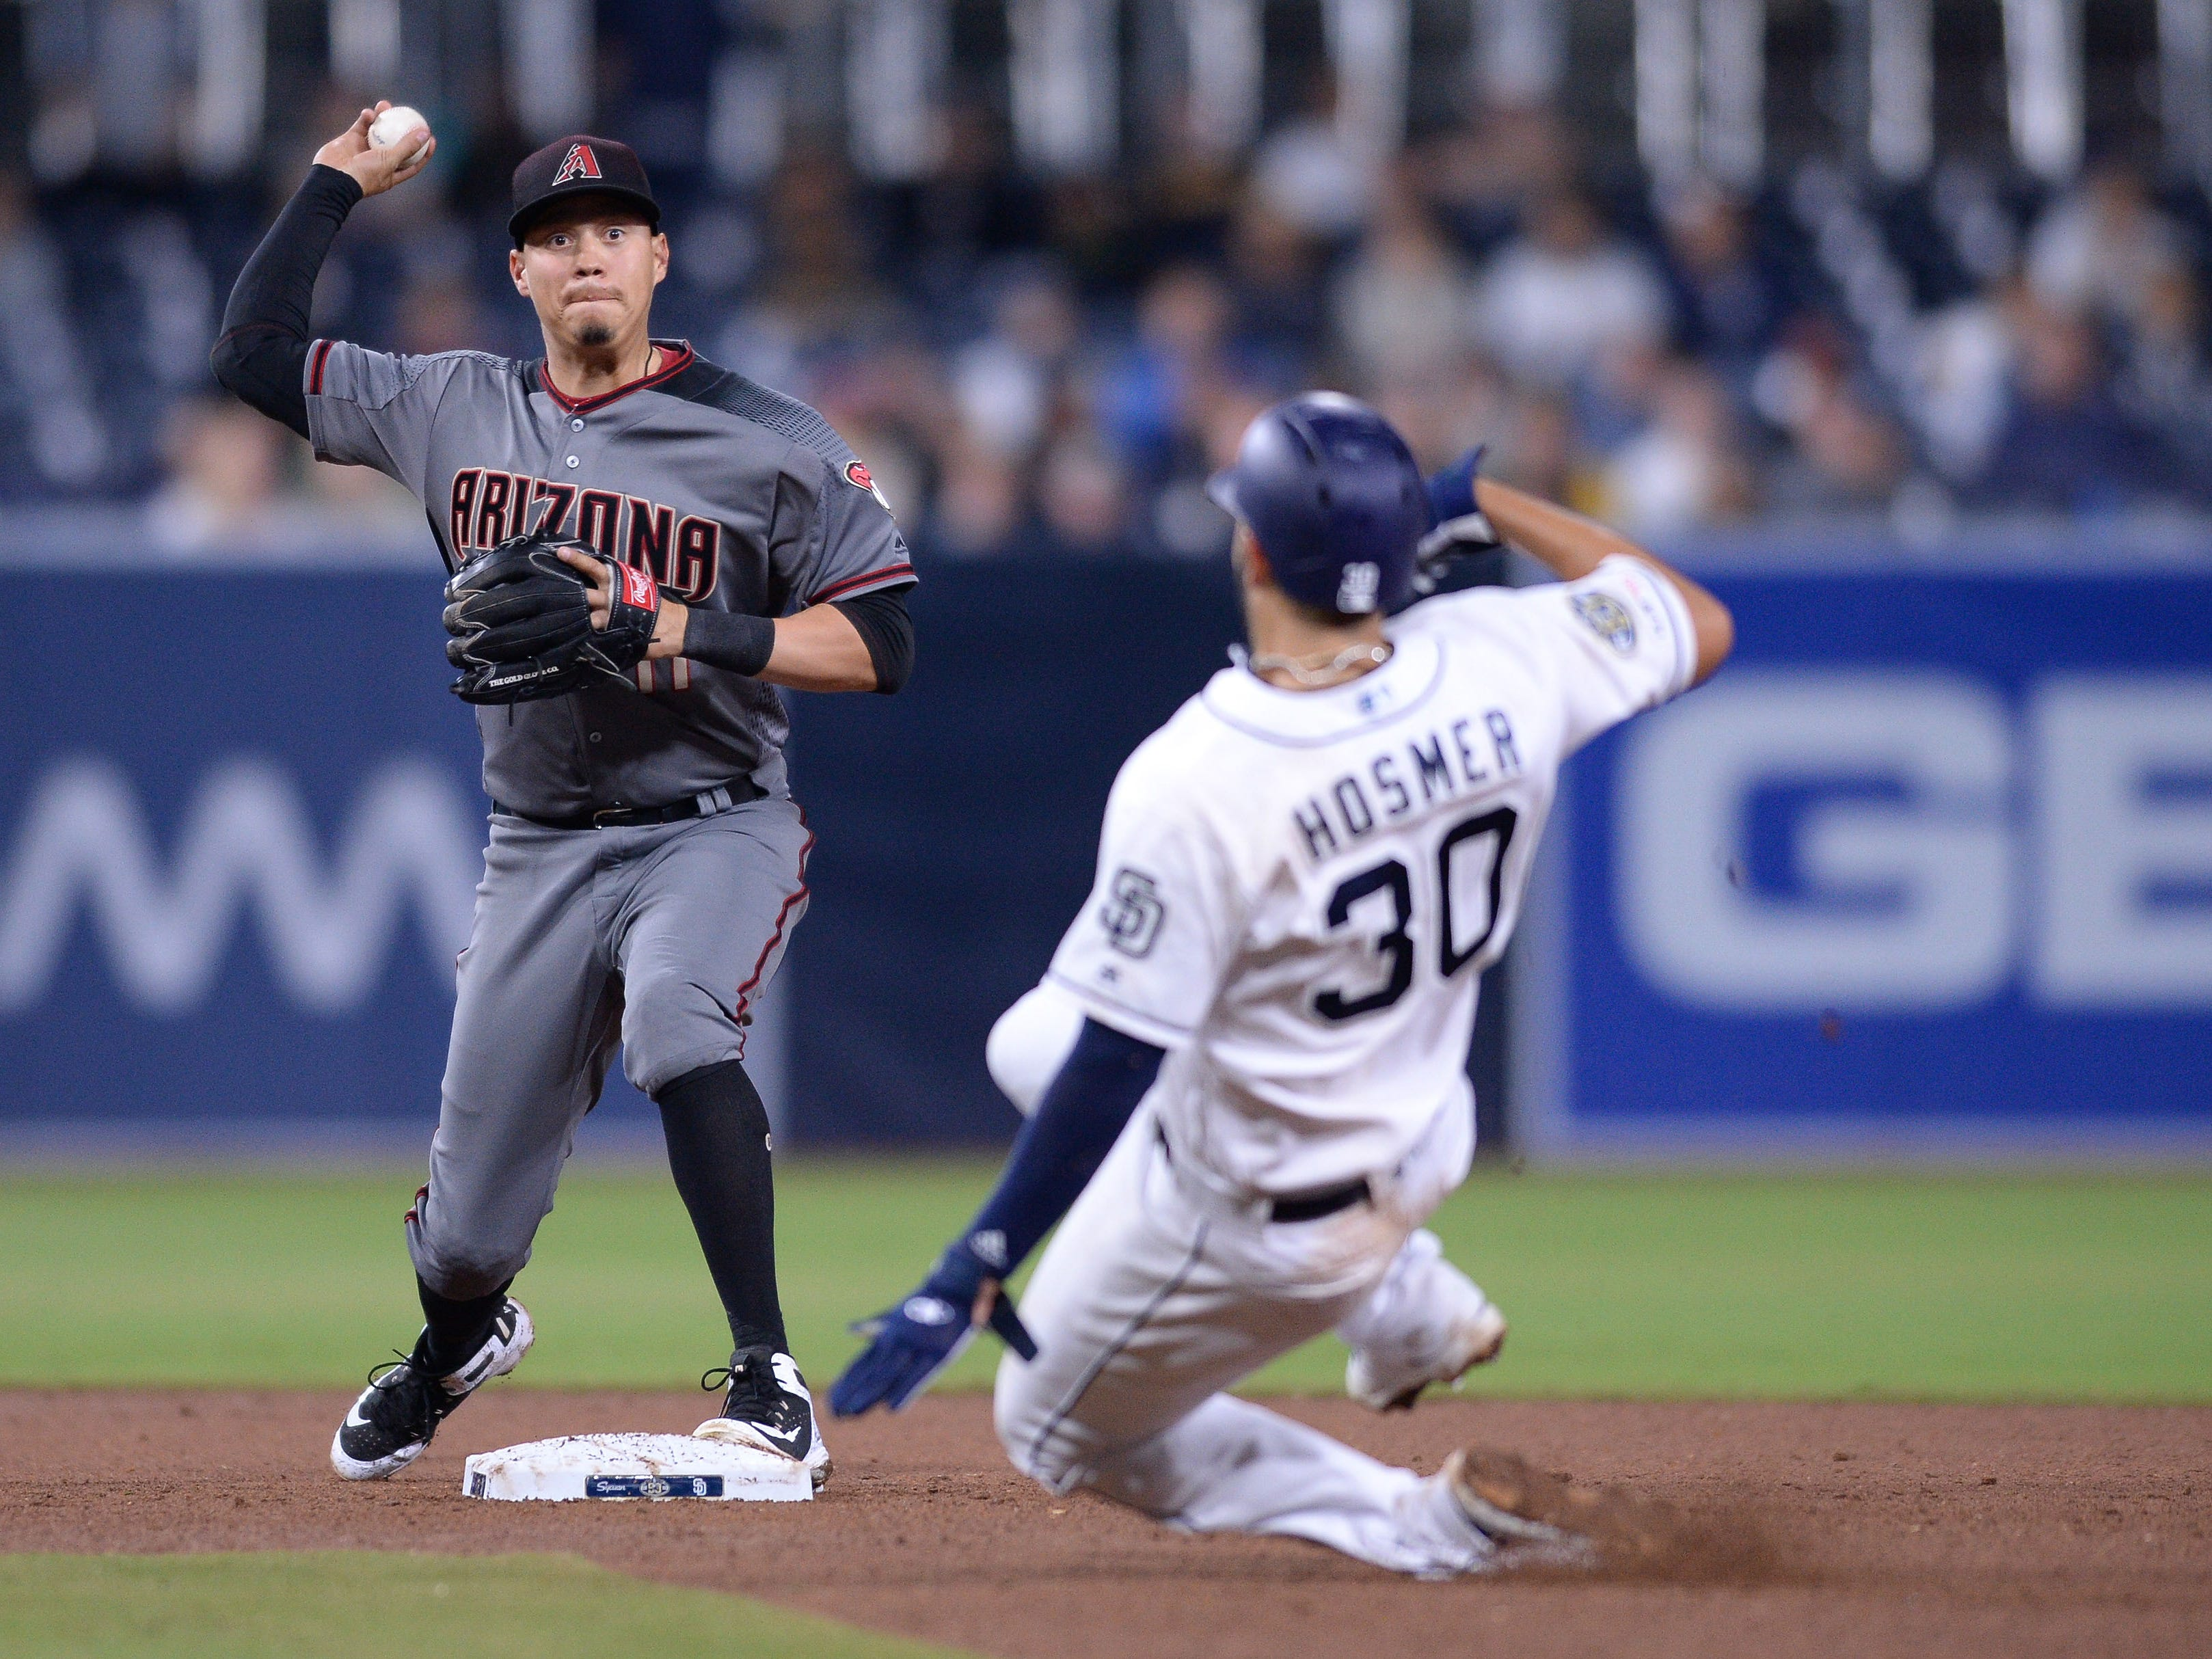 Apr 1, 2019: Arizona Diamondbacks second baseman Wilmer Flores (left) forces out San Diego Padres first baseman Eric Hosmer (30) at second base before throwing to first base to complete the double play during the eighth inning at Petco Park.